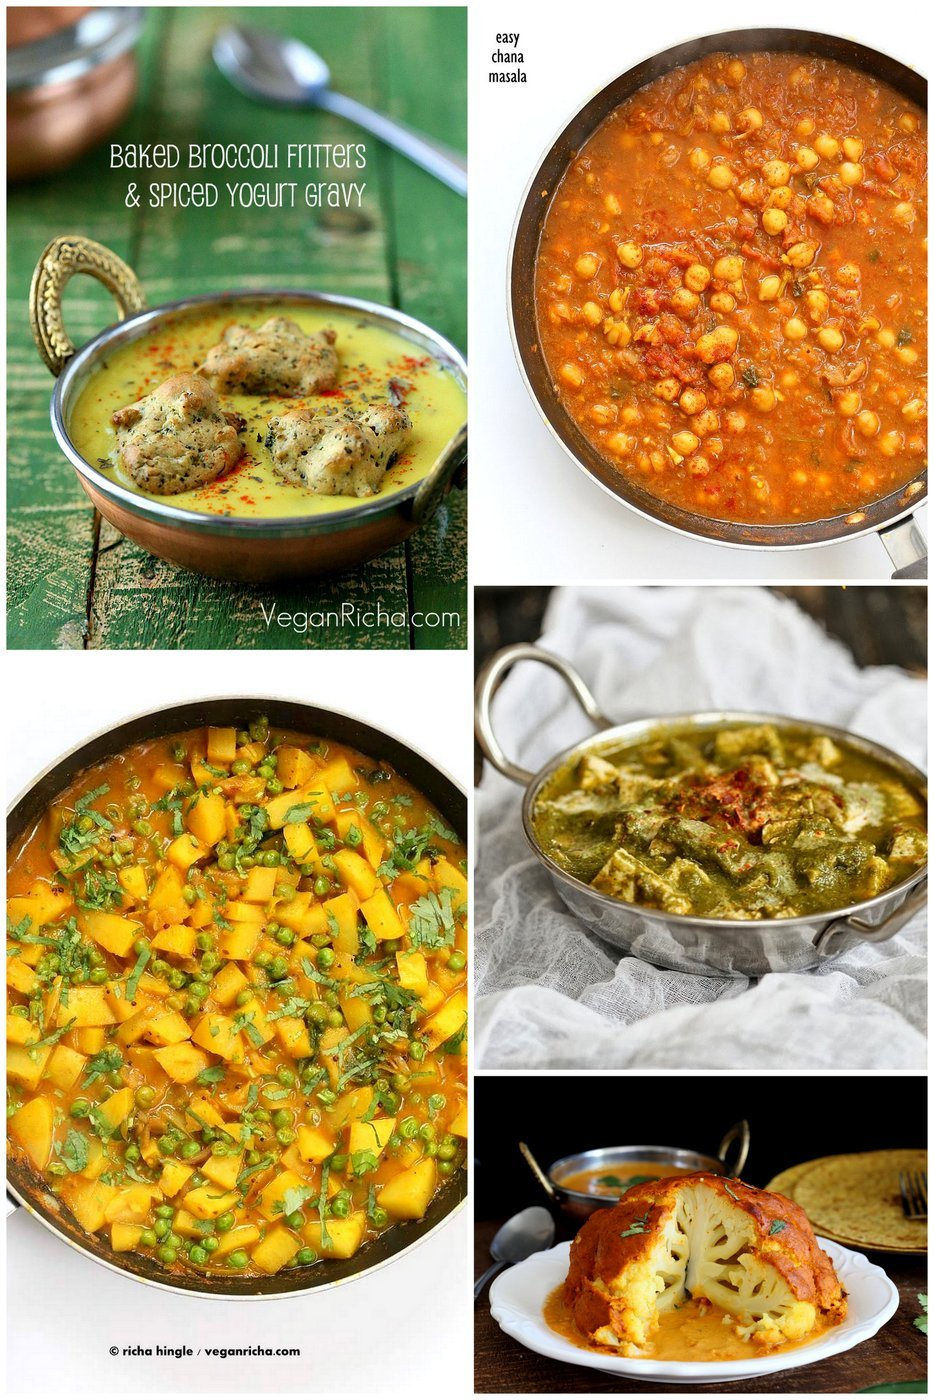 Popular Indian Curries and Entrees like Whote roasted cauliflower, Bombay Potatoes, Kadhi, Pasanda Sauce, Palak tofu and more | VeganRicha.com